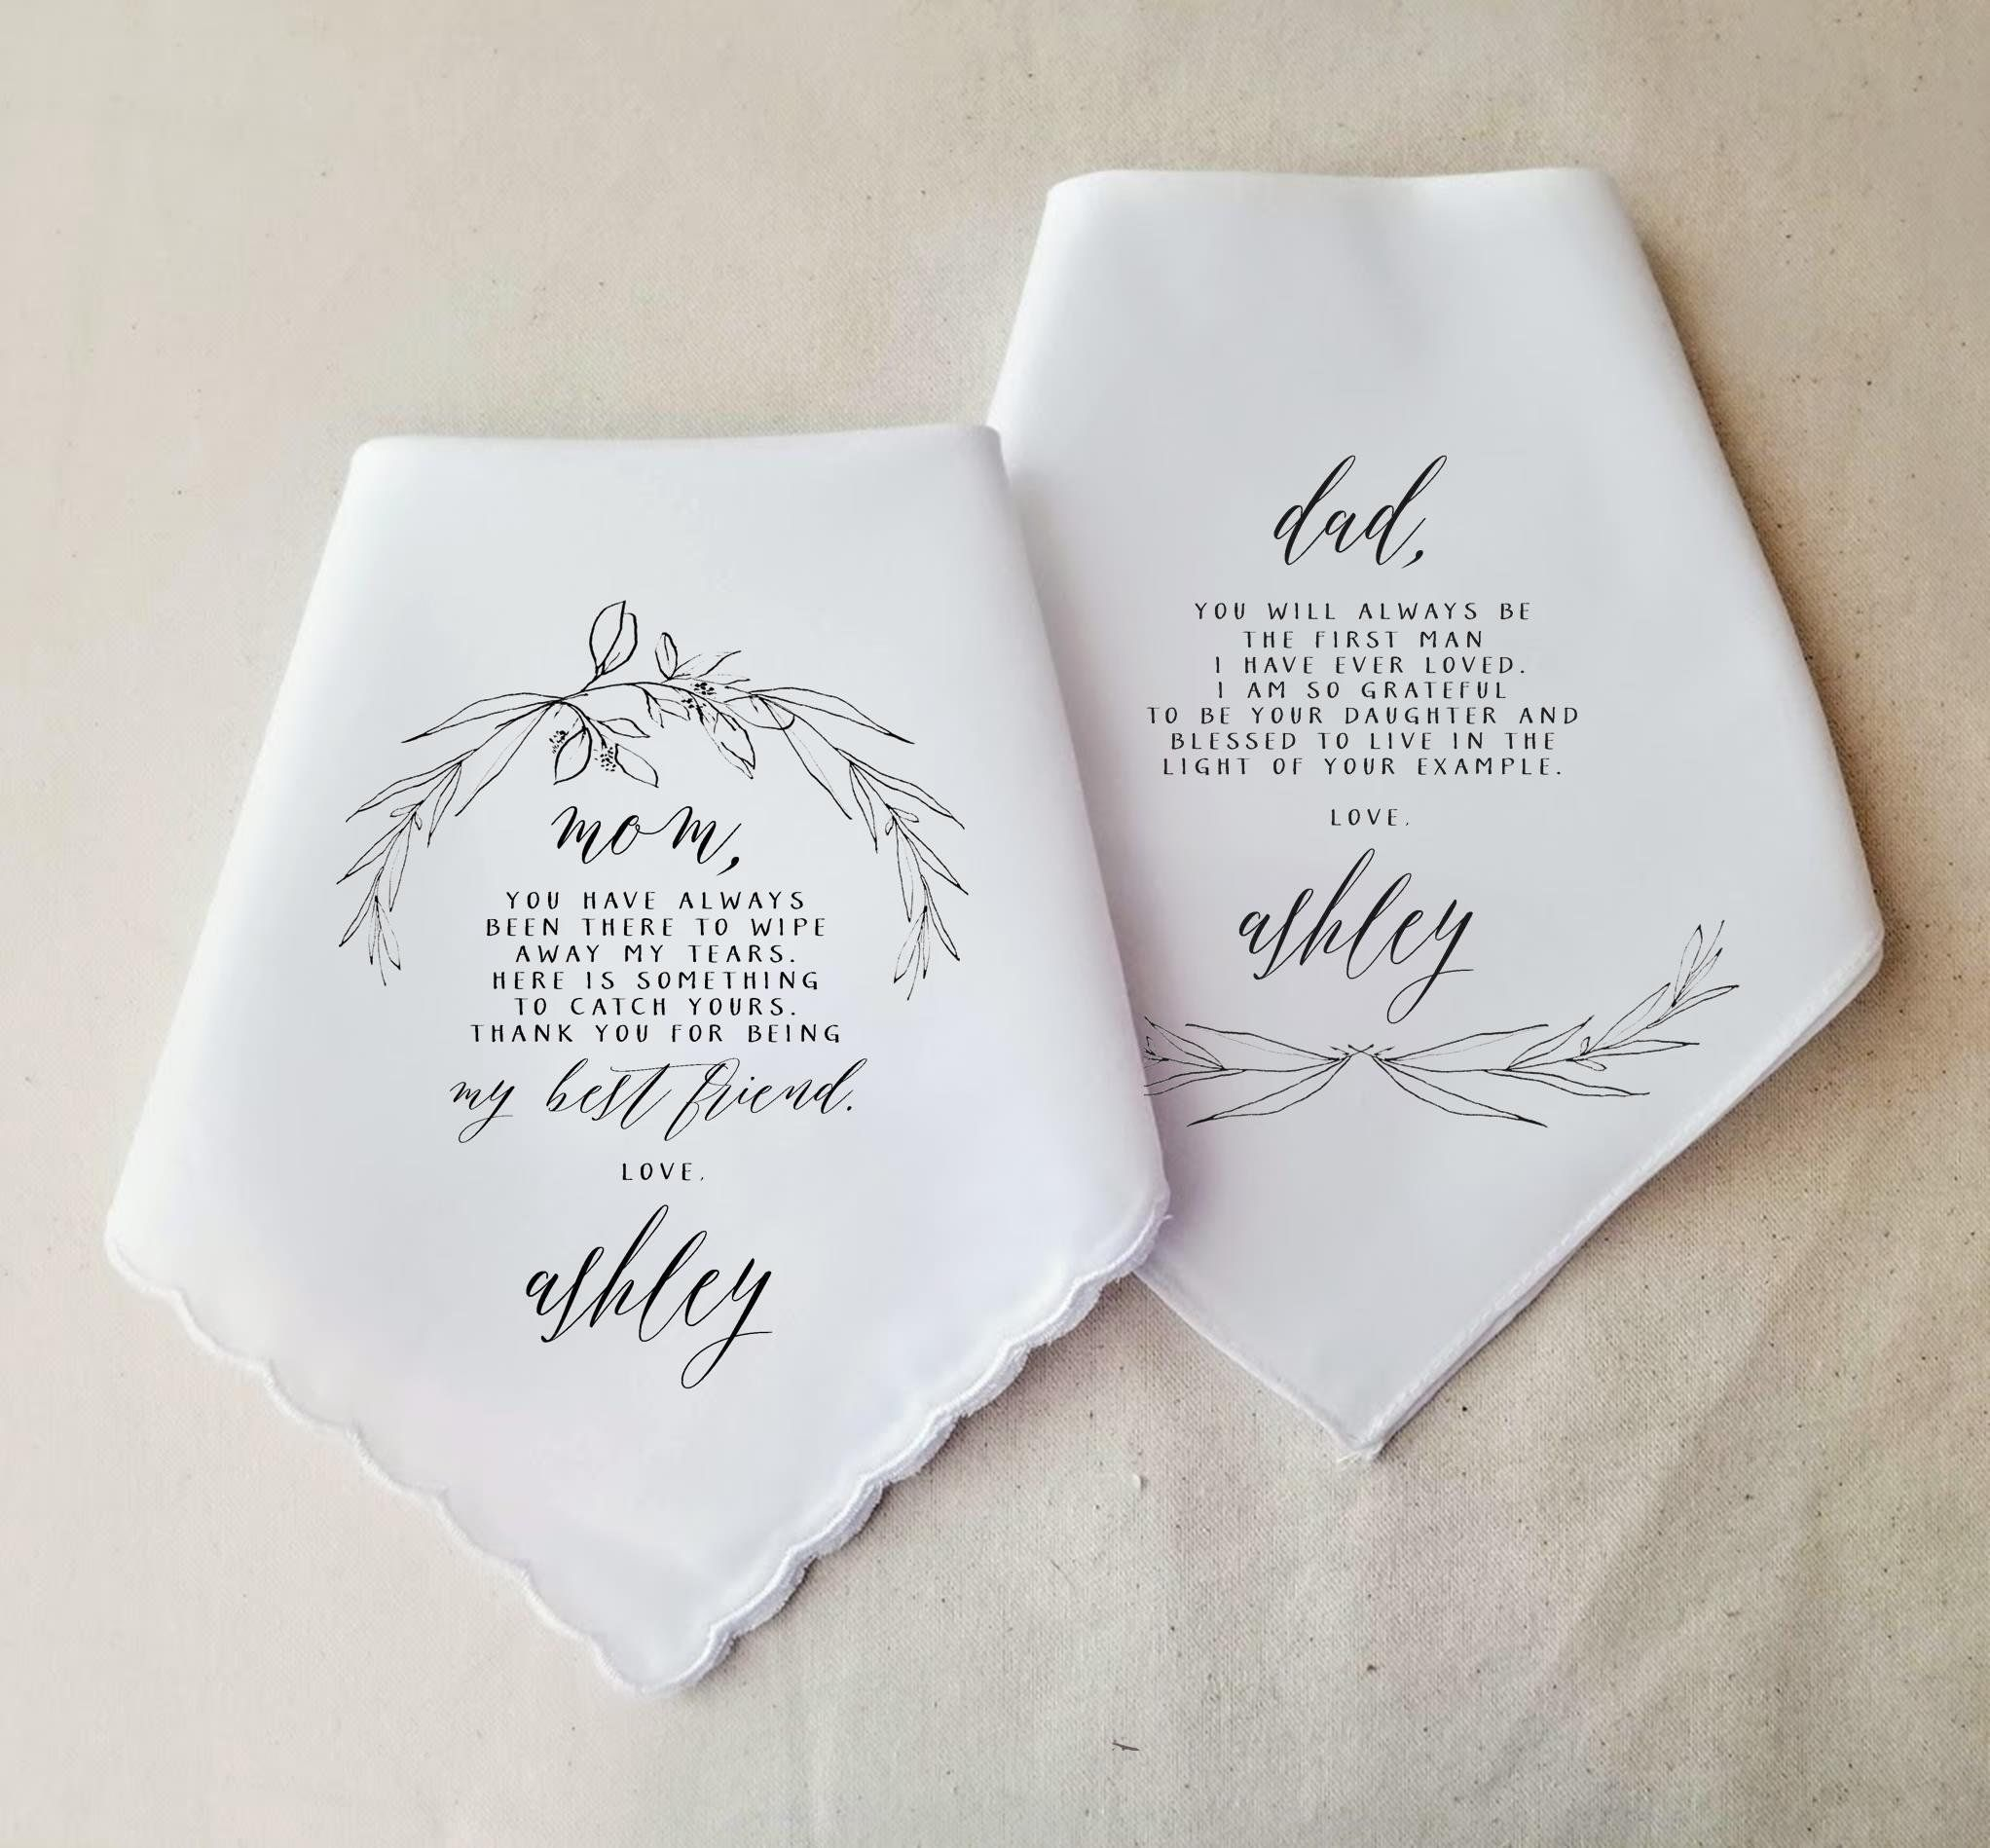 Wedding Gift To Parents From Daughter Wedding Handkerchief Etsy In 2020 Wedding Gifts For Parents Wedding Handkerchief Personalized Handkerchiefs